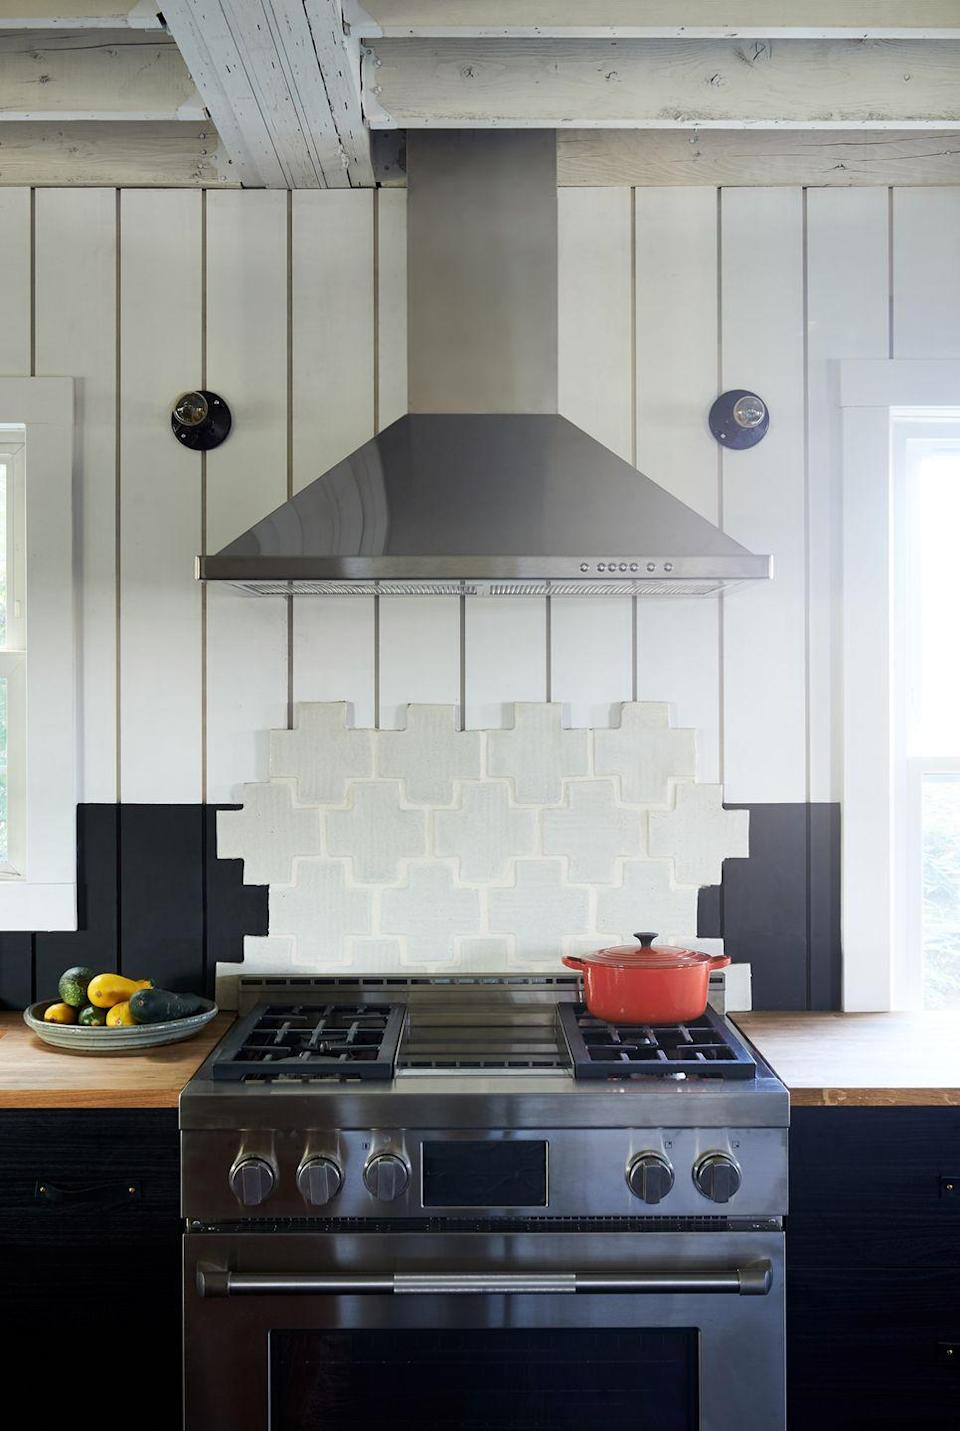 <p>If you can't make up your mind, who says you can't have it all? Layering color-blocked wood panels with tiles, you'll achieve an intriguing three dimensional look. Stick to neutral tones if you don't want it too appear chaotic. </p>